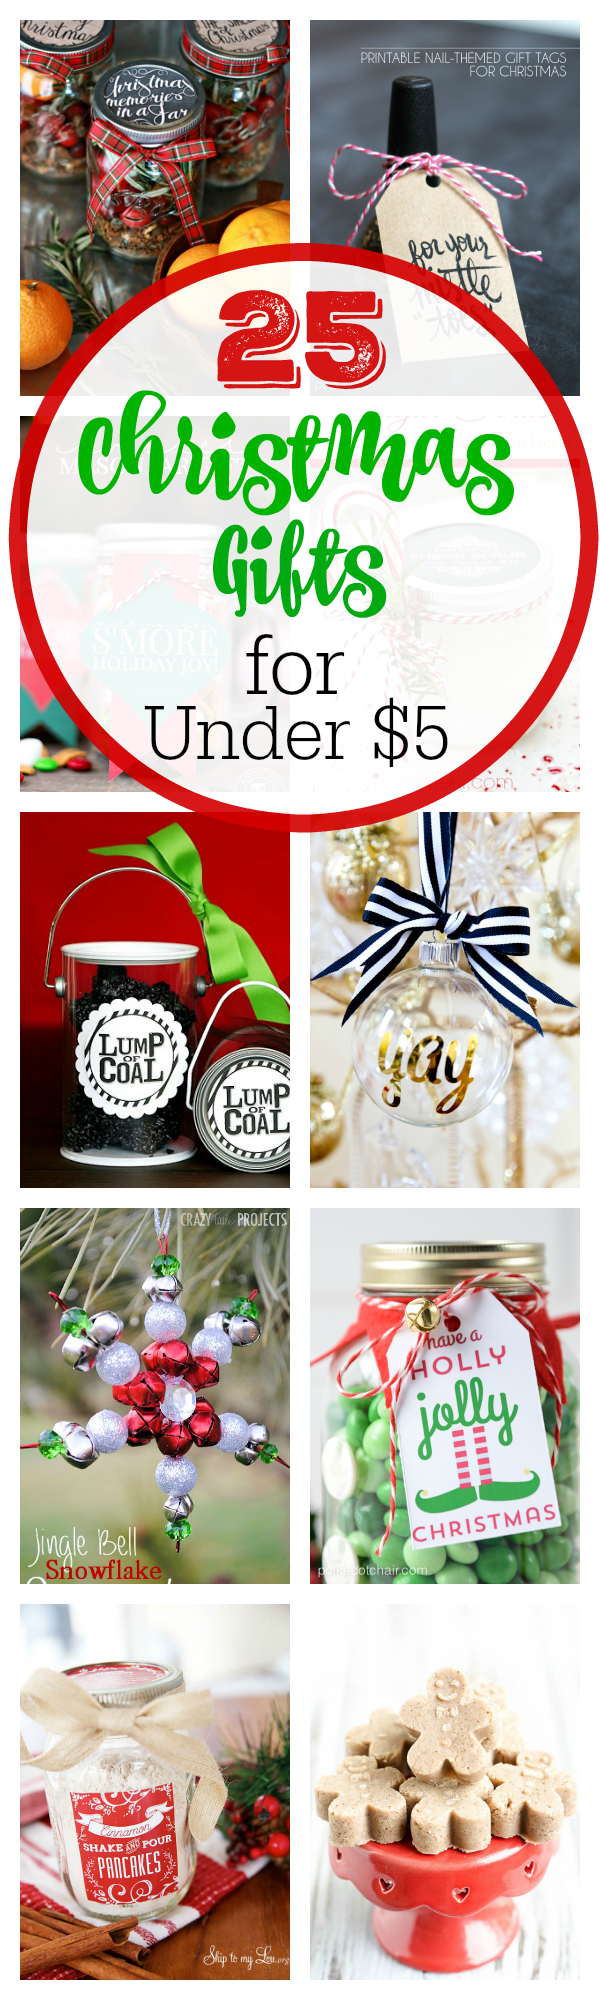 Cute Christmas Ideas For Friends.25 Cheap Gifts For Christmas Under 5 Crazy Little Projects